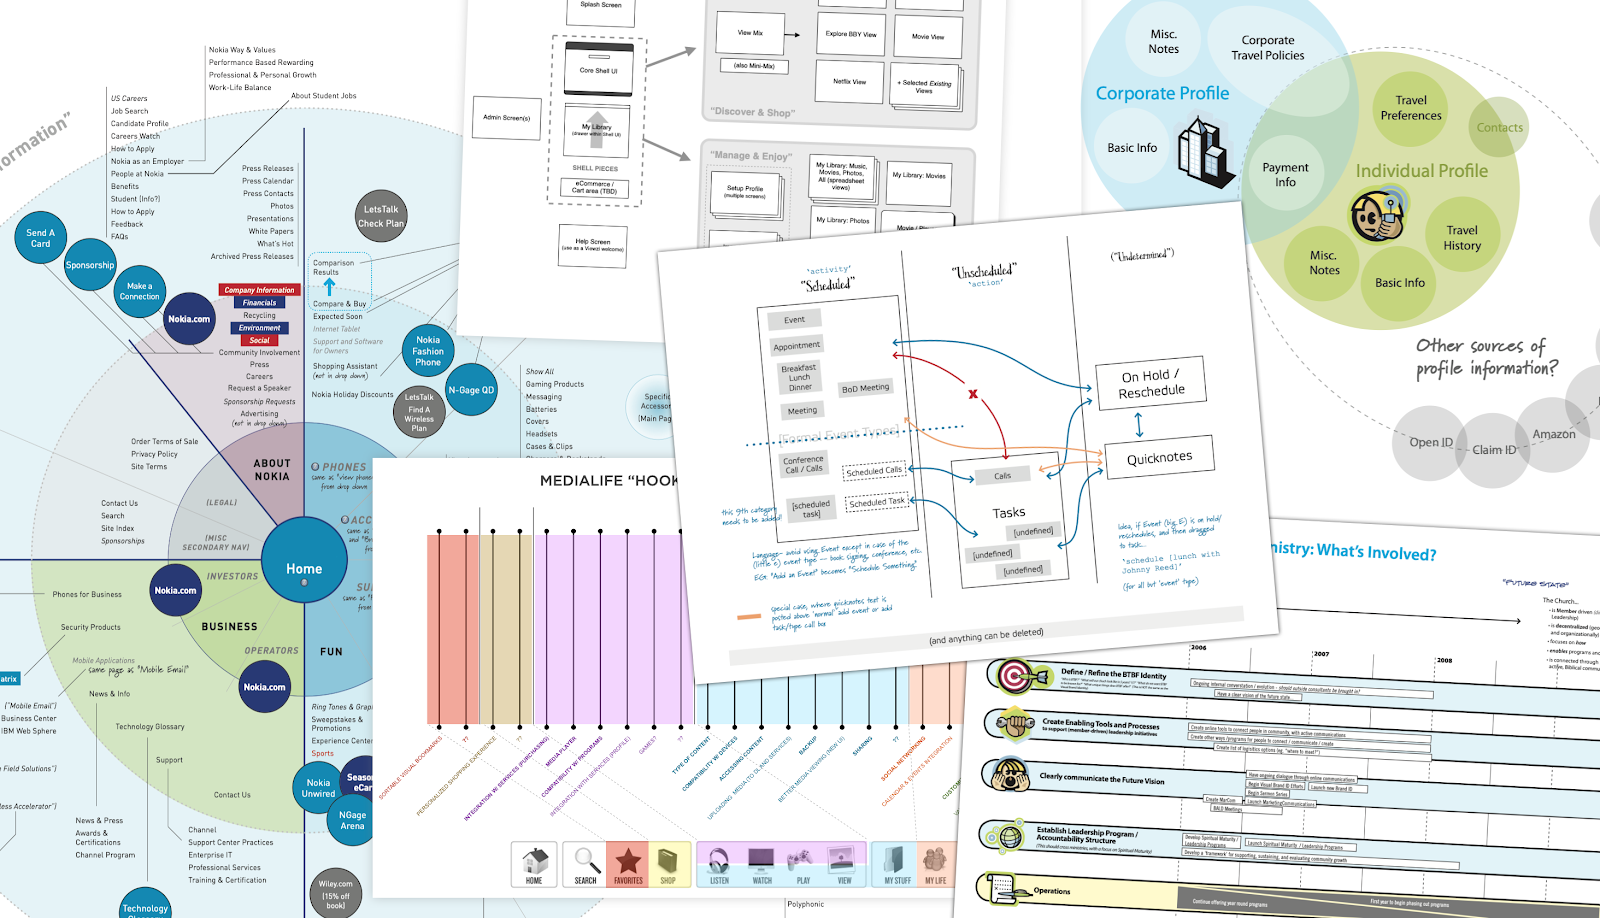 A collection of images from the Business Model Canvas showcase the relationship to design principles and methods.